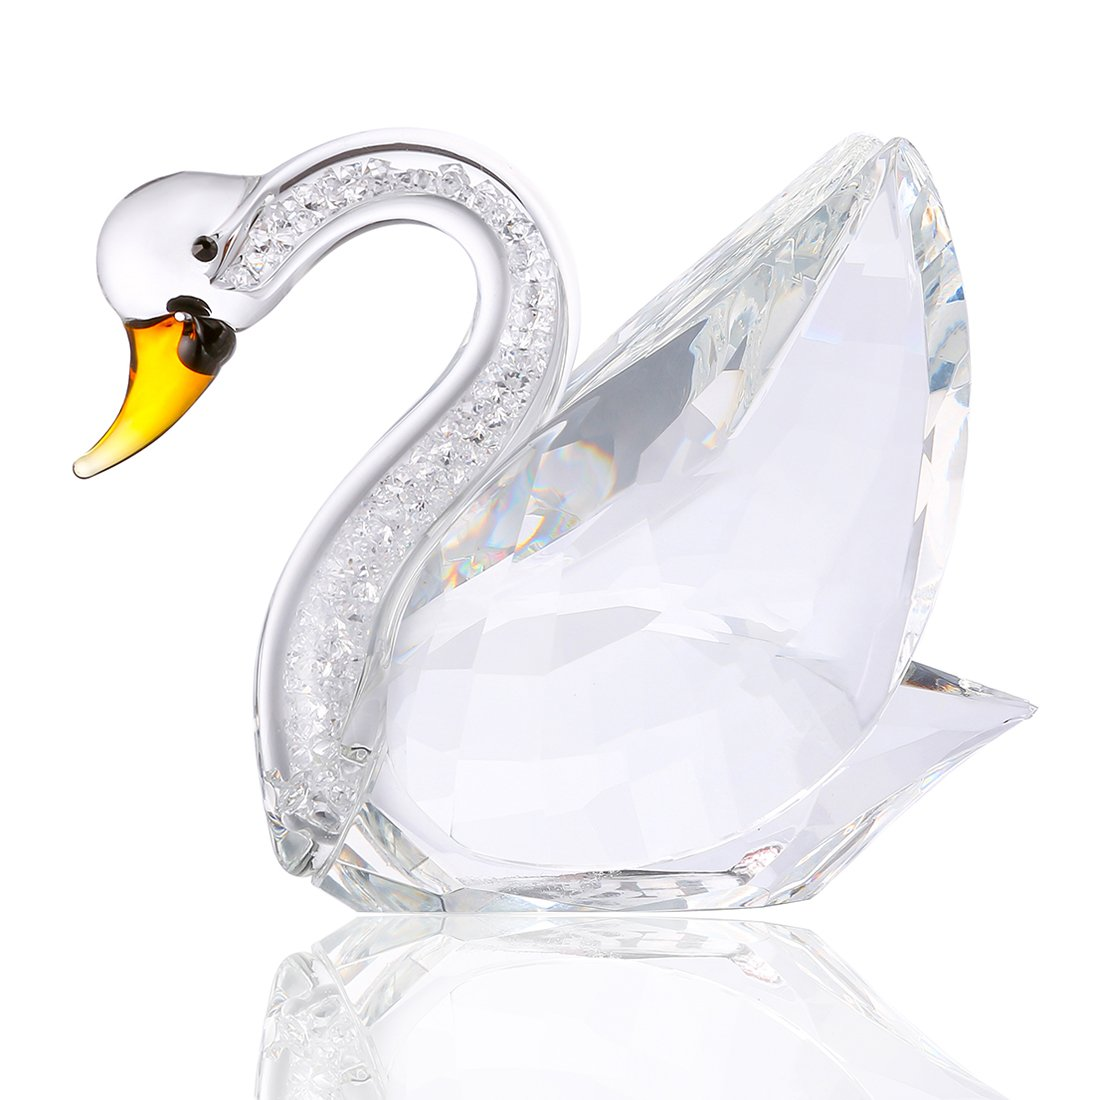 H&D Clear Crystal Swan Statue with Rhinestomes Home Decoration Gifts for her